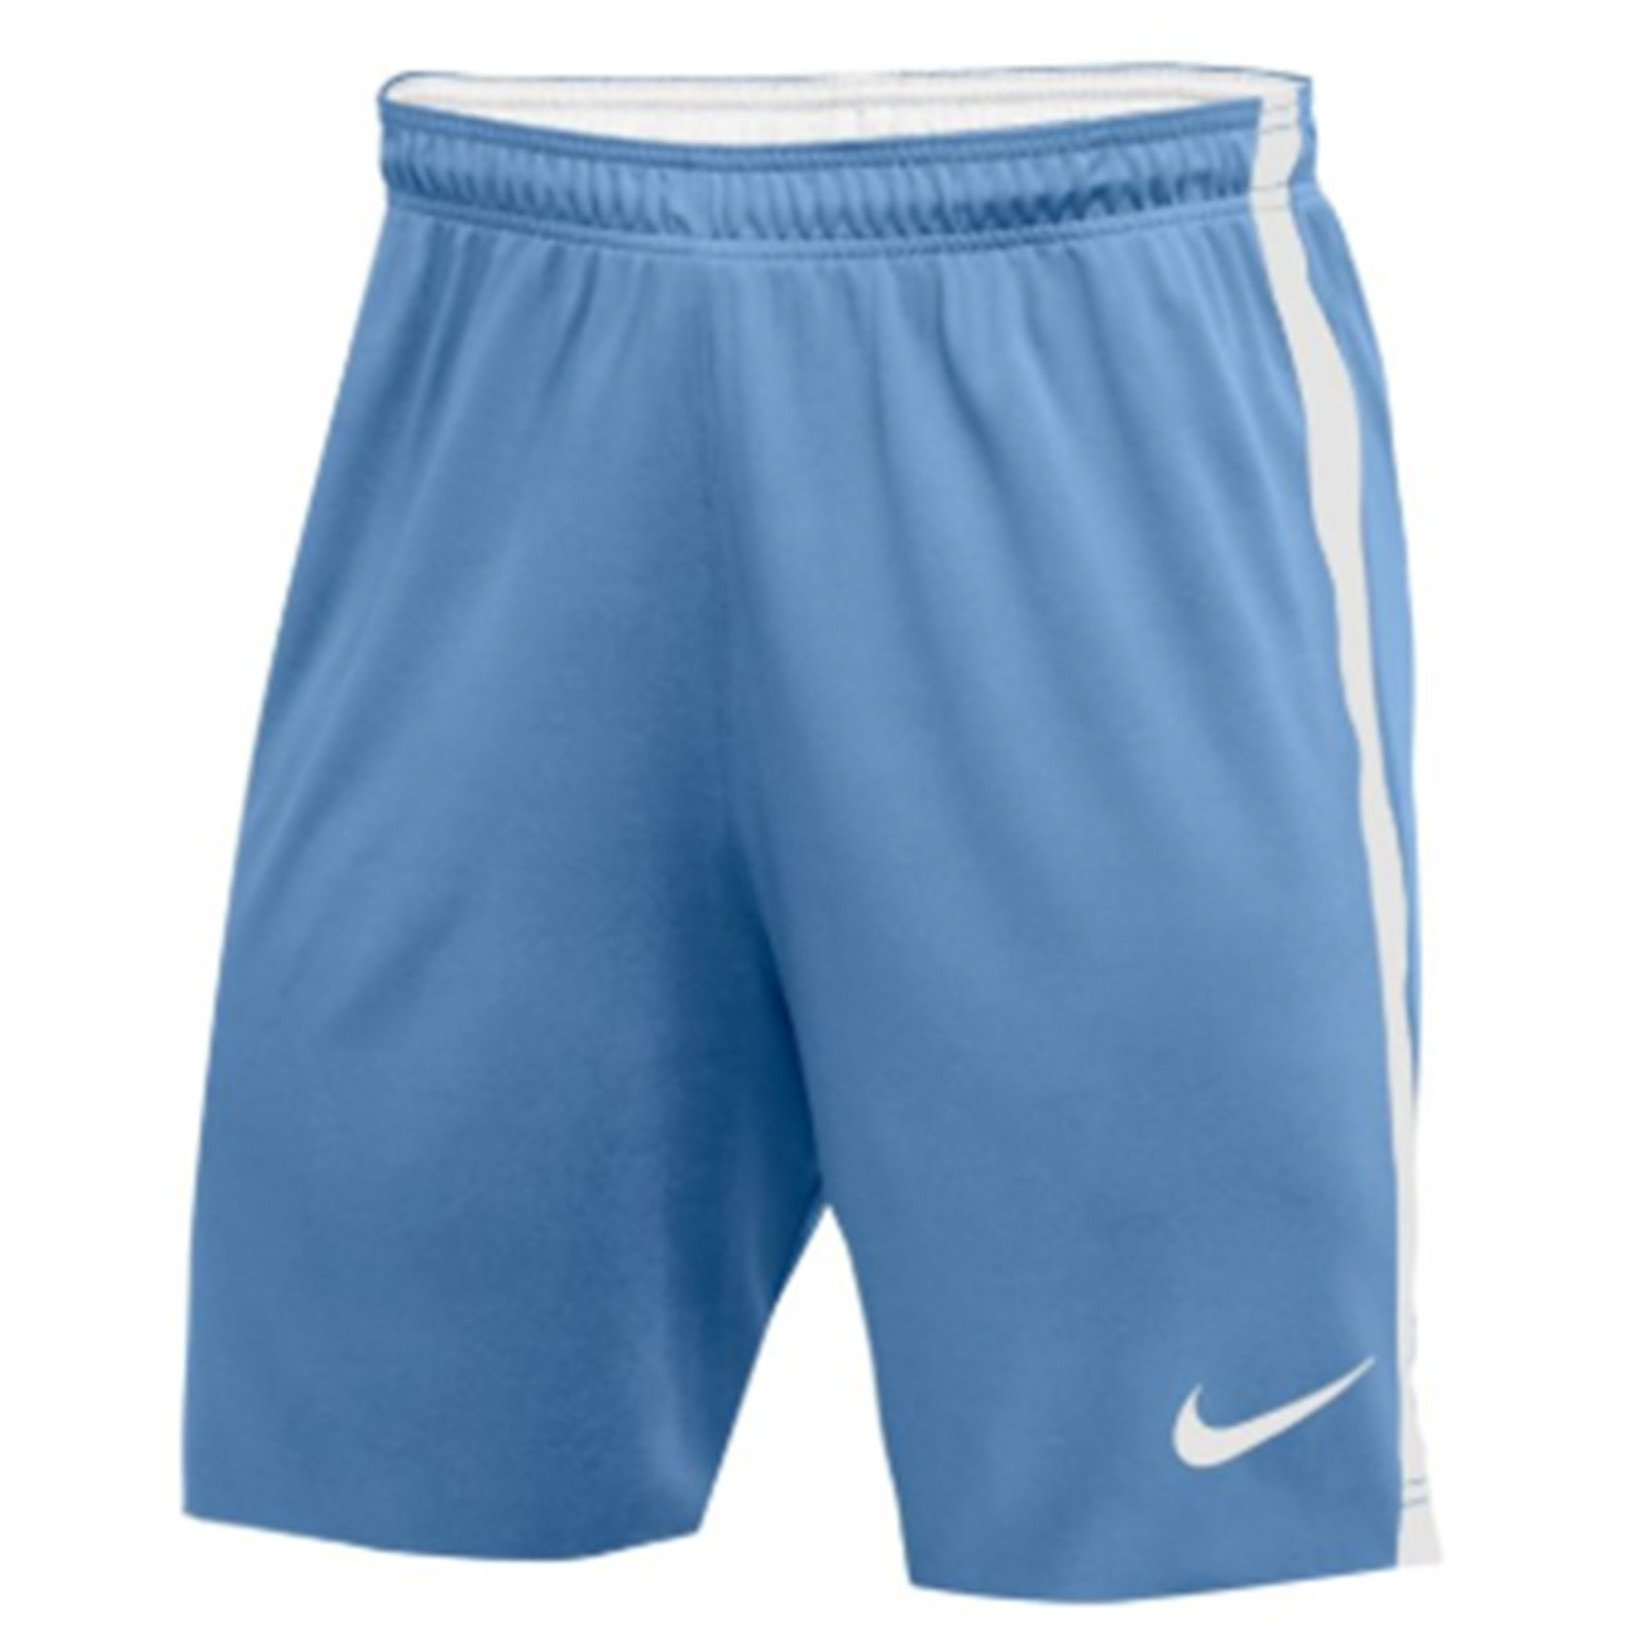 NIKE VENOM 2 SHORT WOMEN